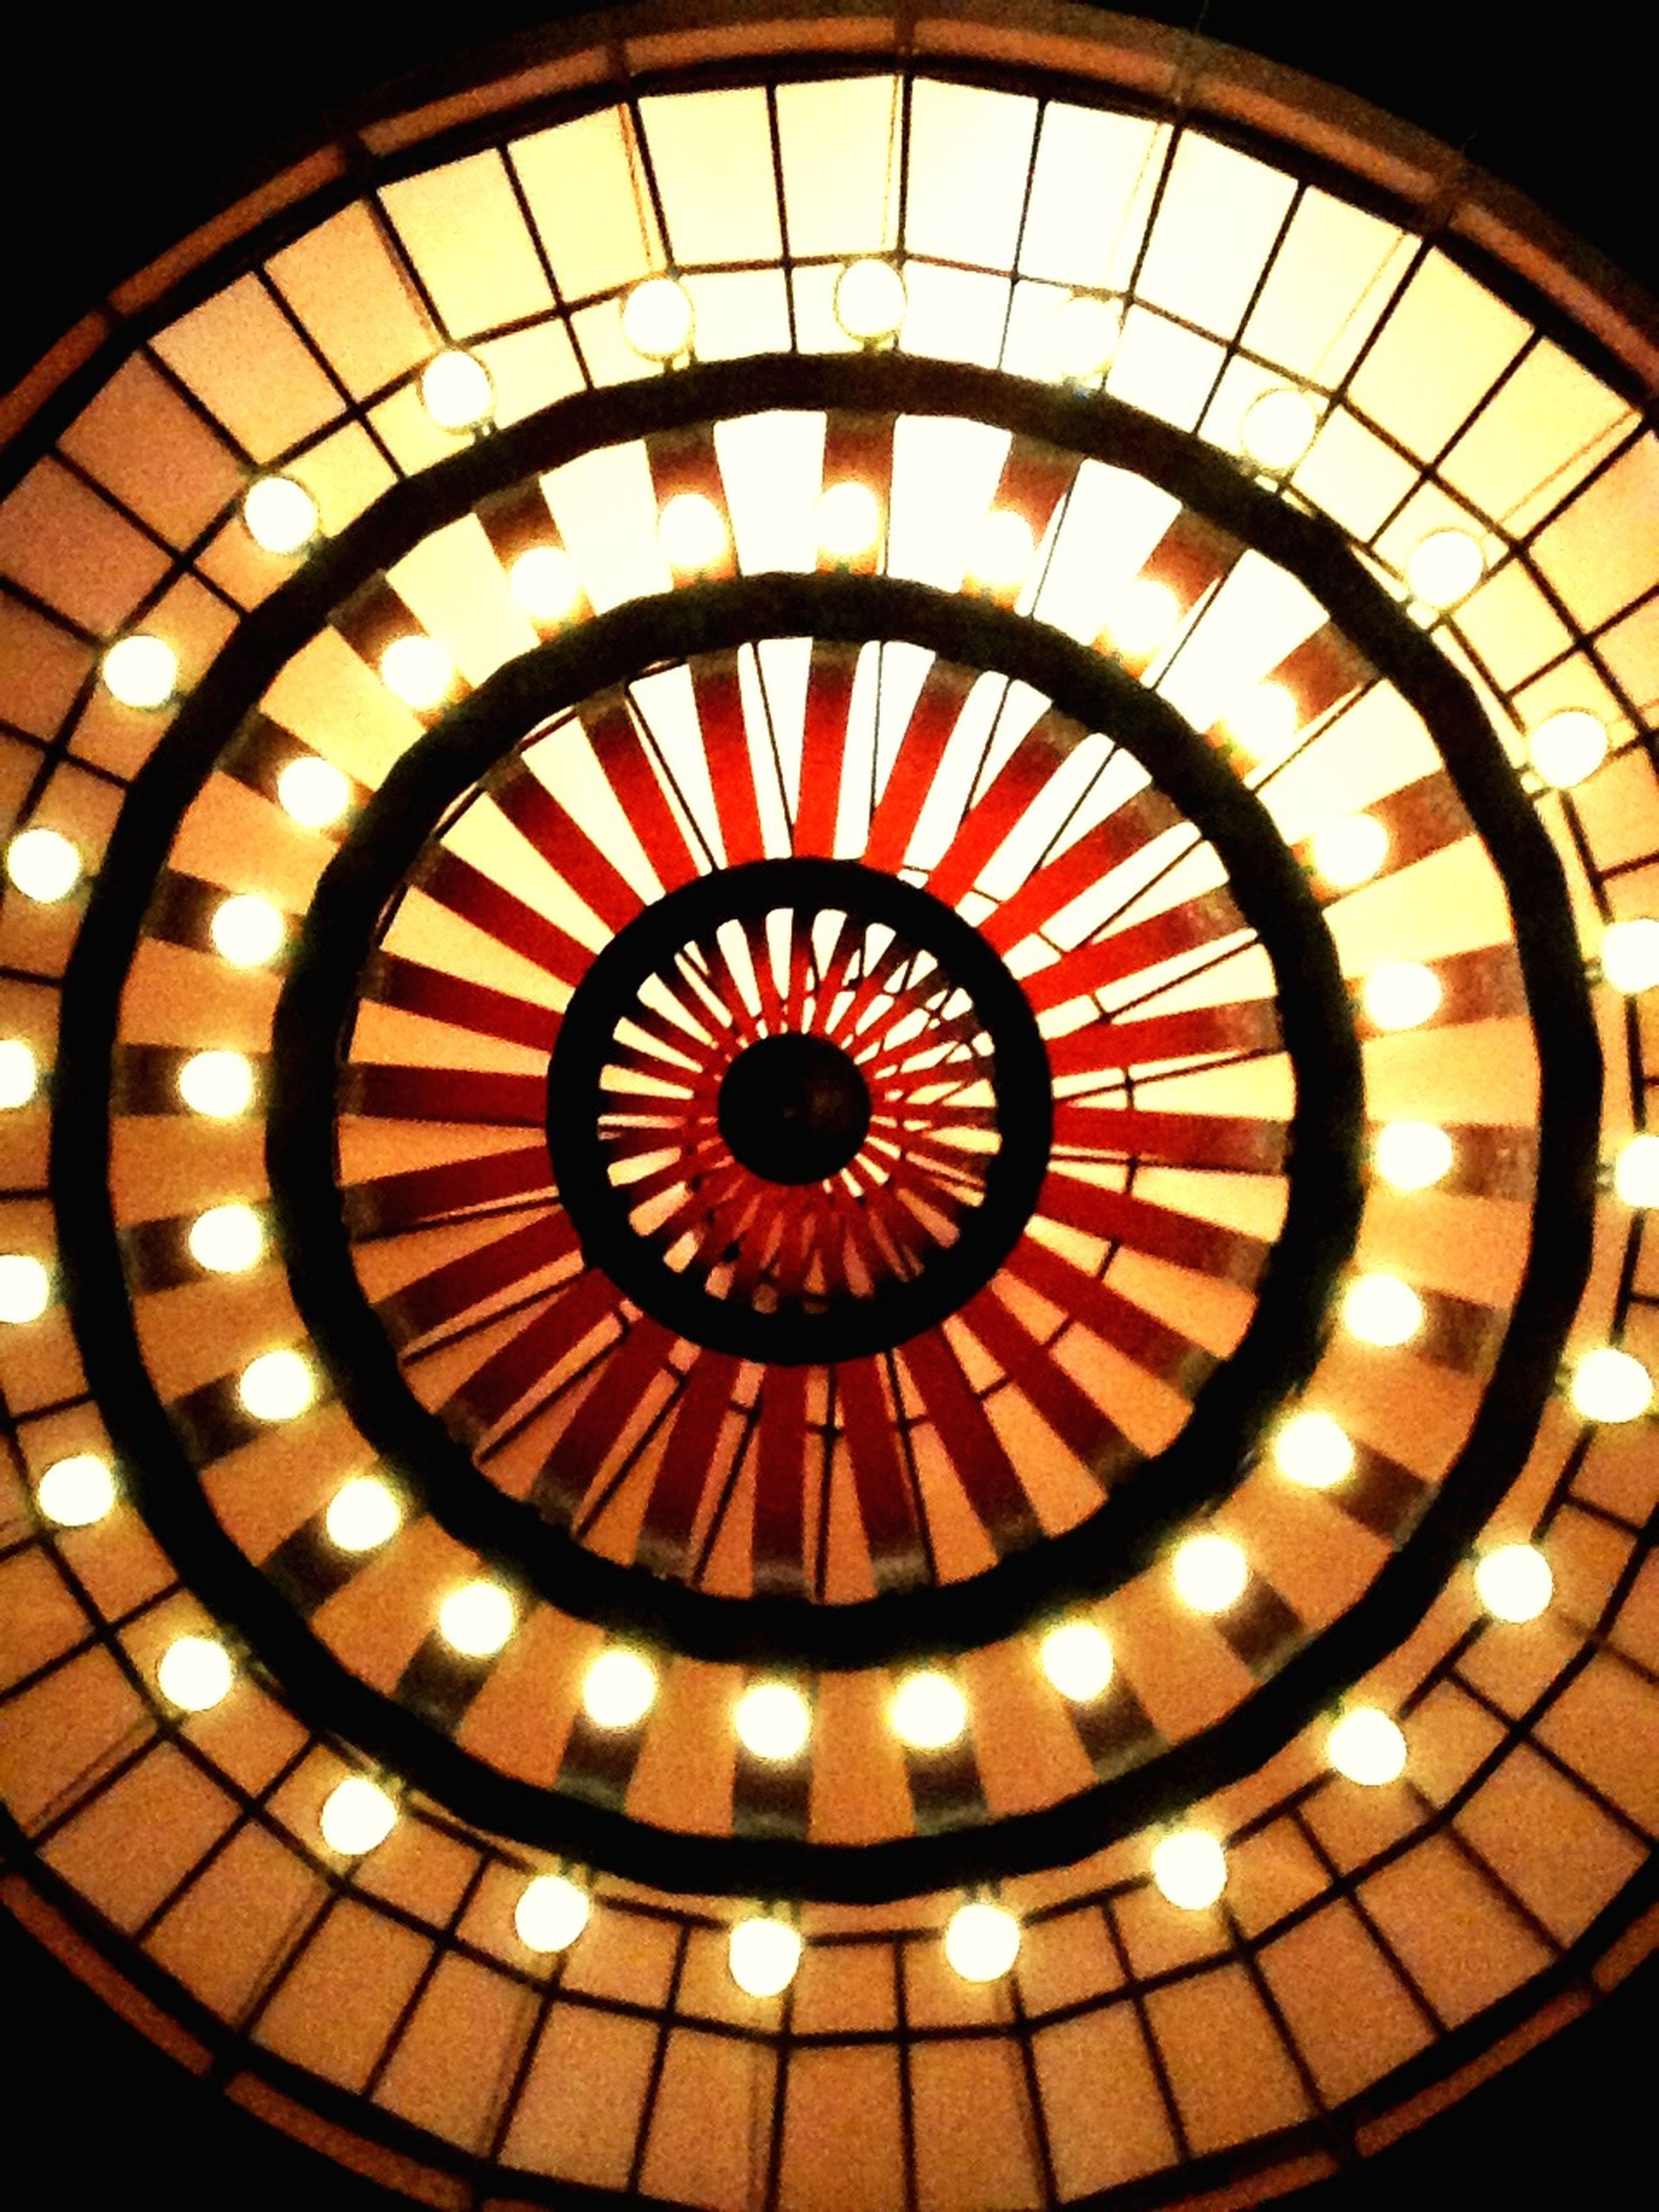 indoors, circle, ceiling, pattern, geometric shape, illuminated, design, full frame, backgrounds, lighting equipment, shape, directly below, no people, decoration, low angle view, yellow, built structure, repetition, glowing, orange color